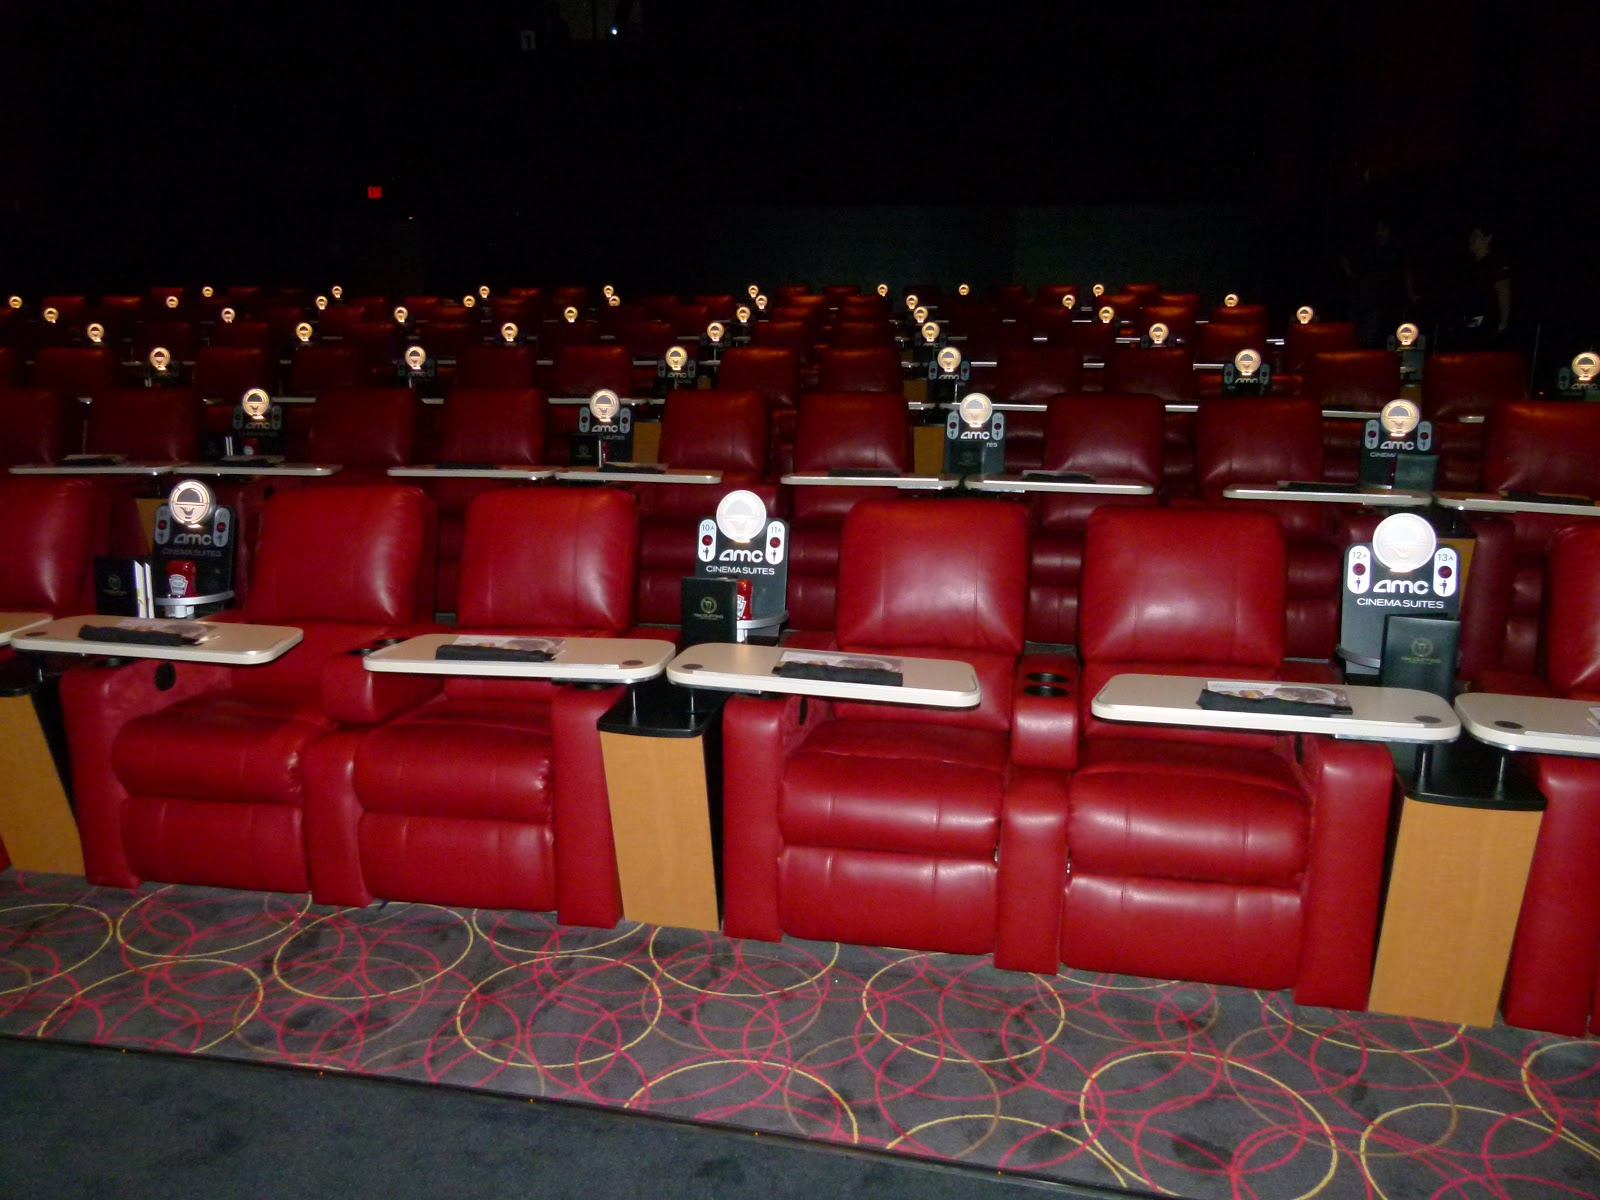 Amc Marlton 8 >> Things To Do In Los Angeles: AMC 6 Dine-In Theaters Watch ...